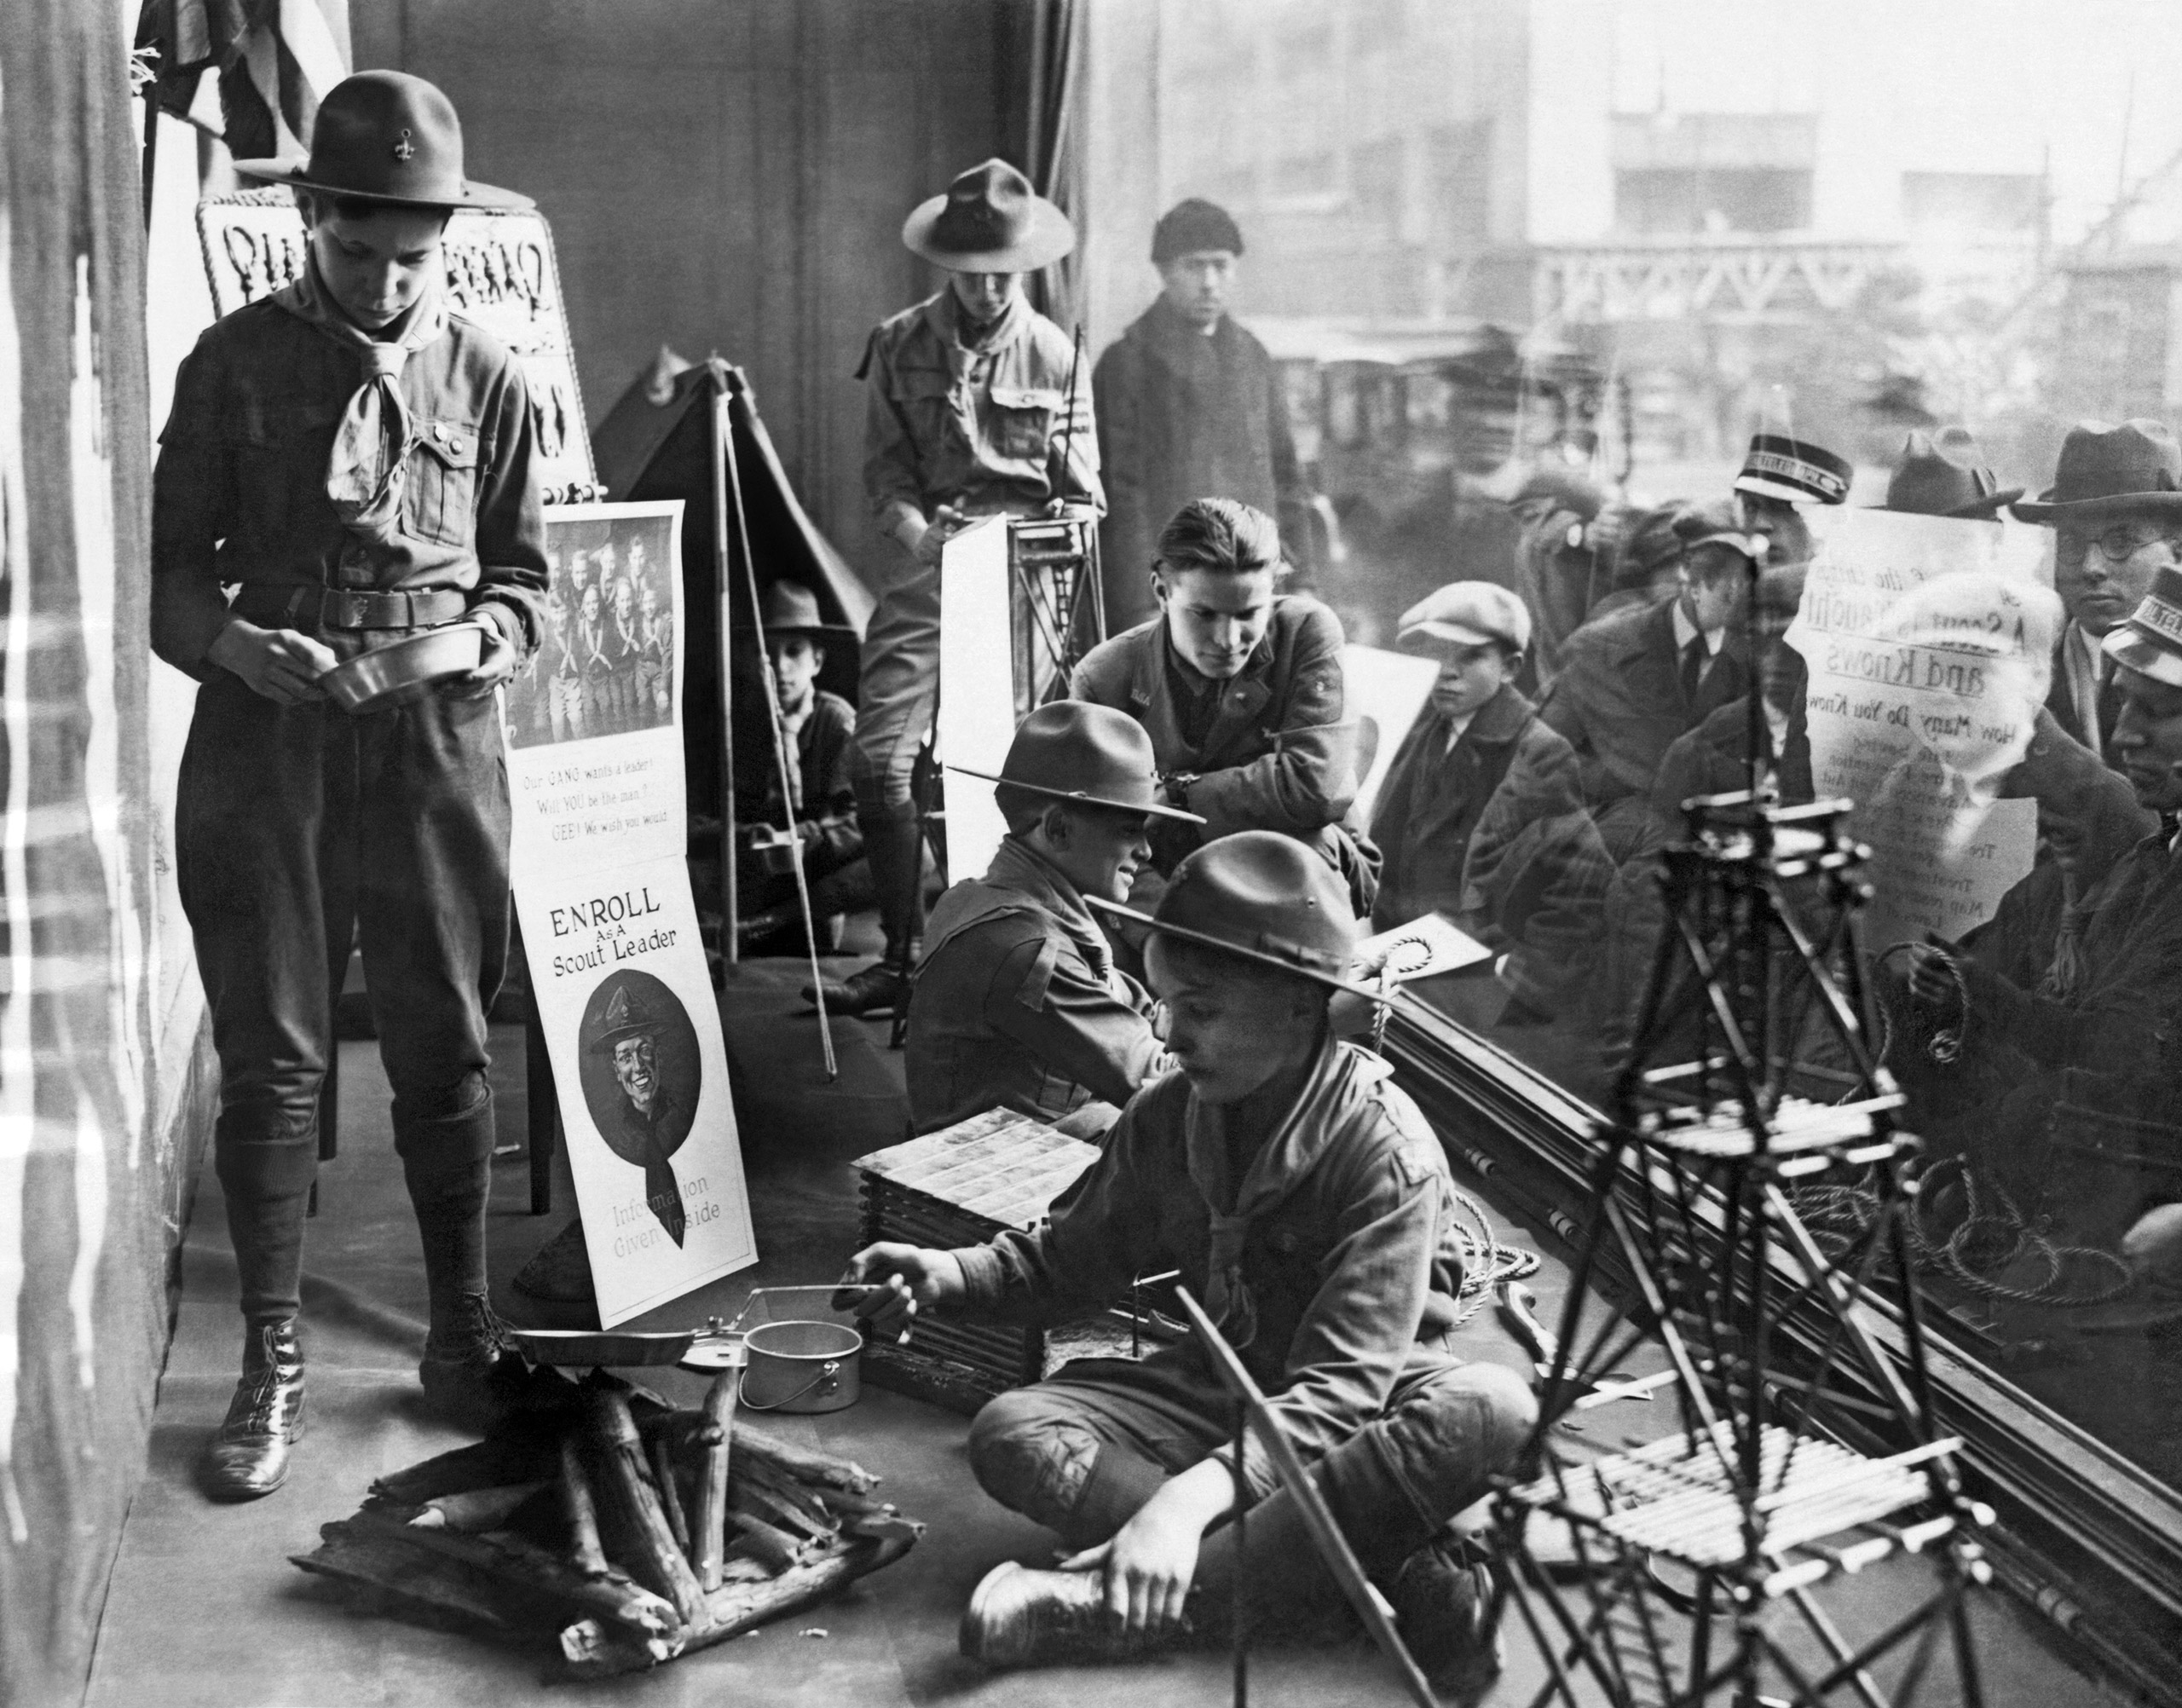 Boy Scouts camped out in the store window of Abercrombie and Fitch as part of their recruitment drive for new scout members in New York. 1923.